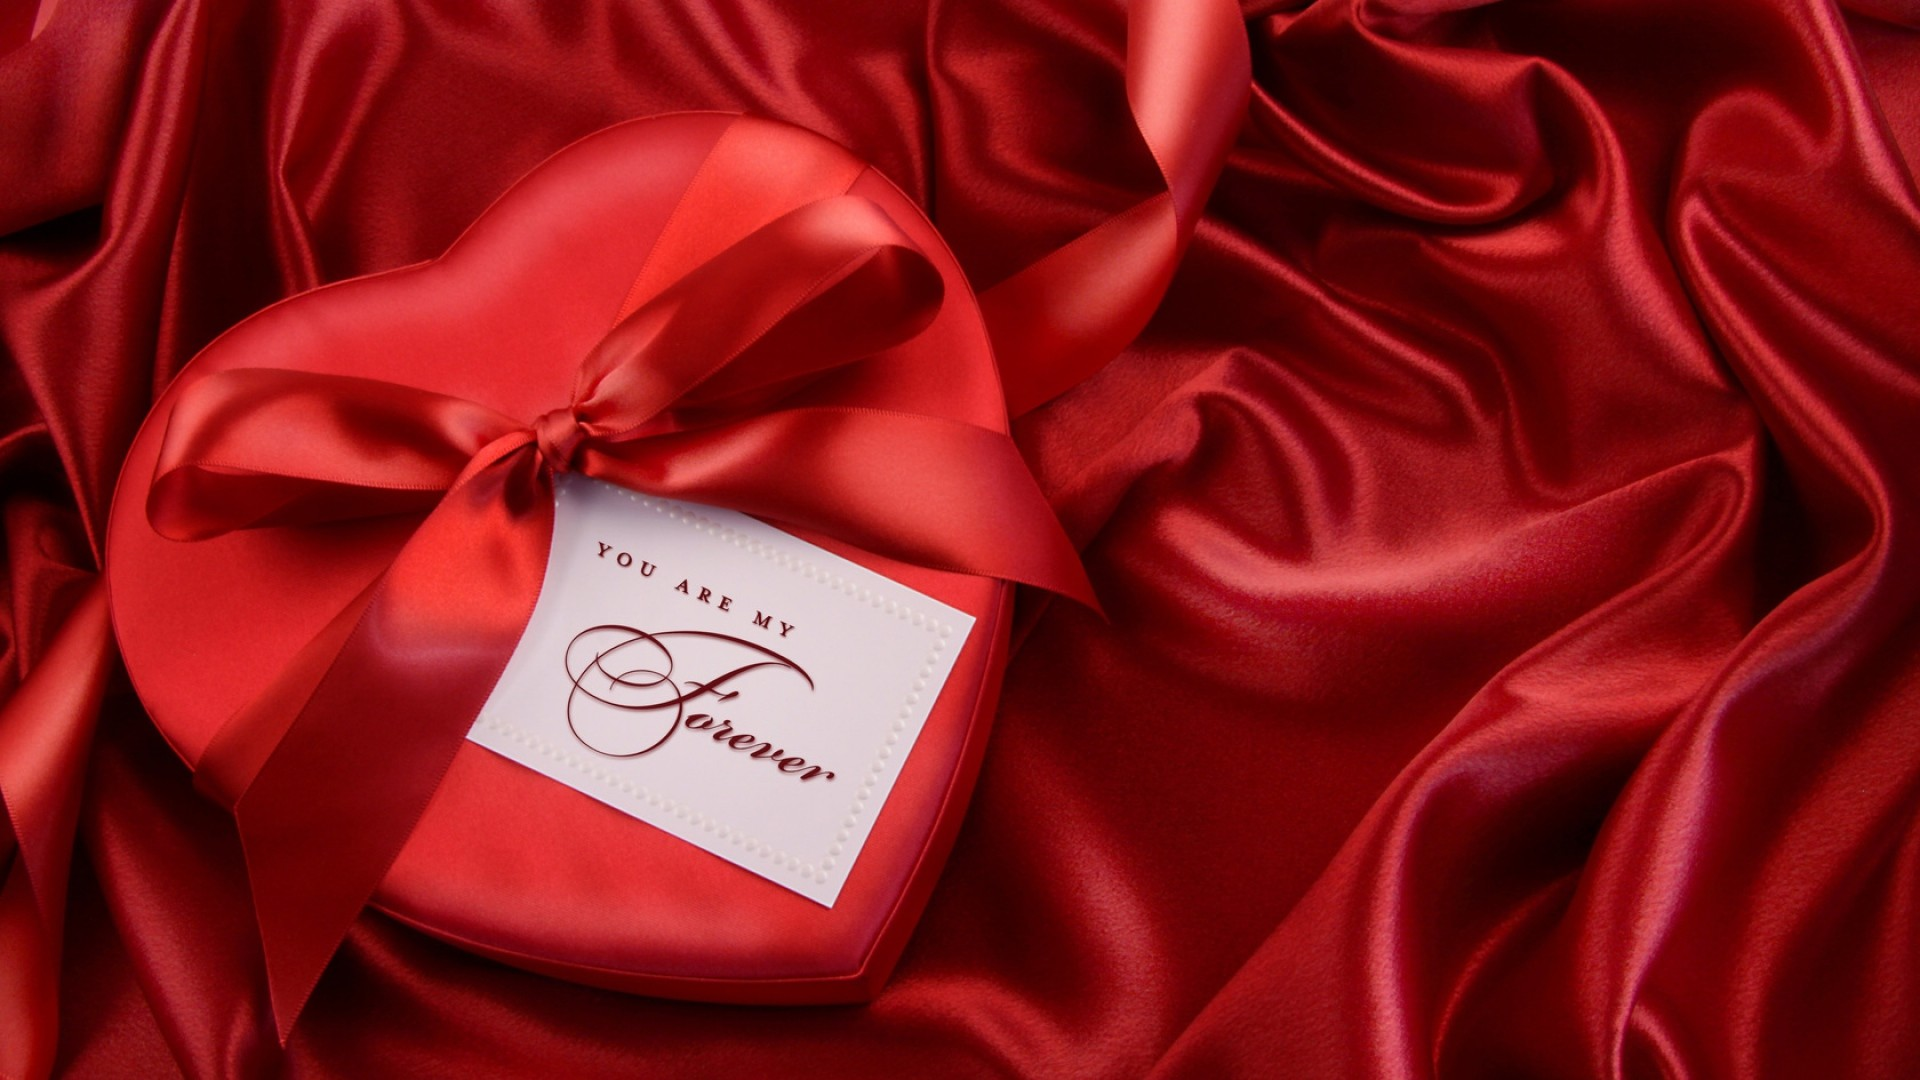 Res: 1920x1080, Get the latest red, satin, ribbon news, pictures and videos and learn all  about red, satin, ribbon from wallpapers4u.org, your wallpaper news source.